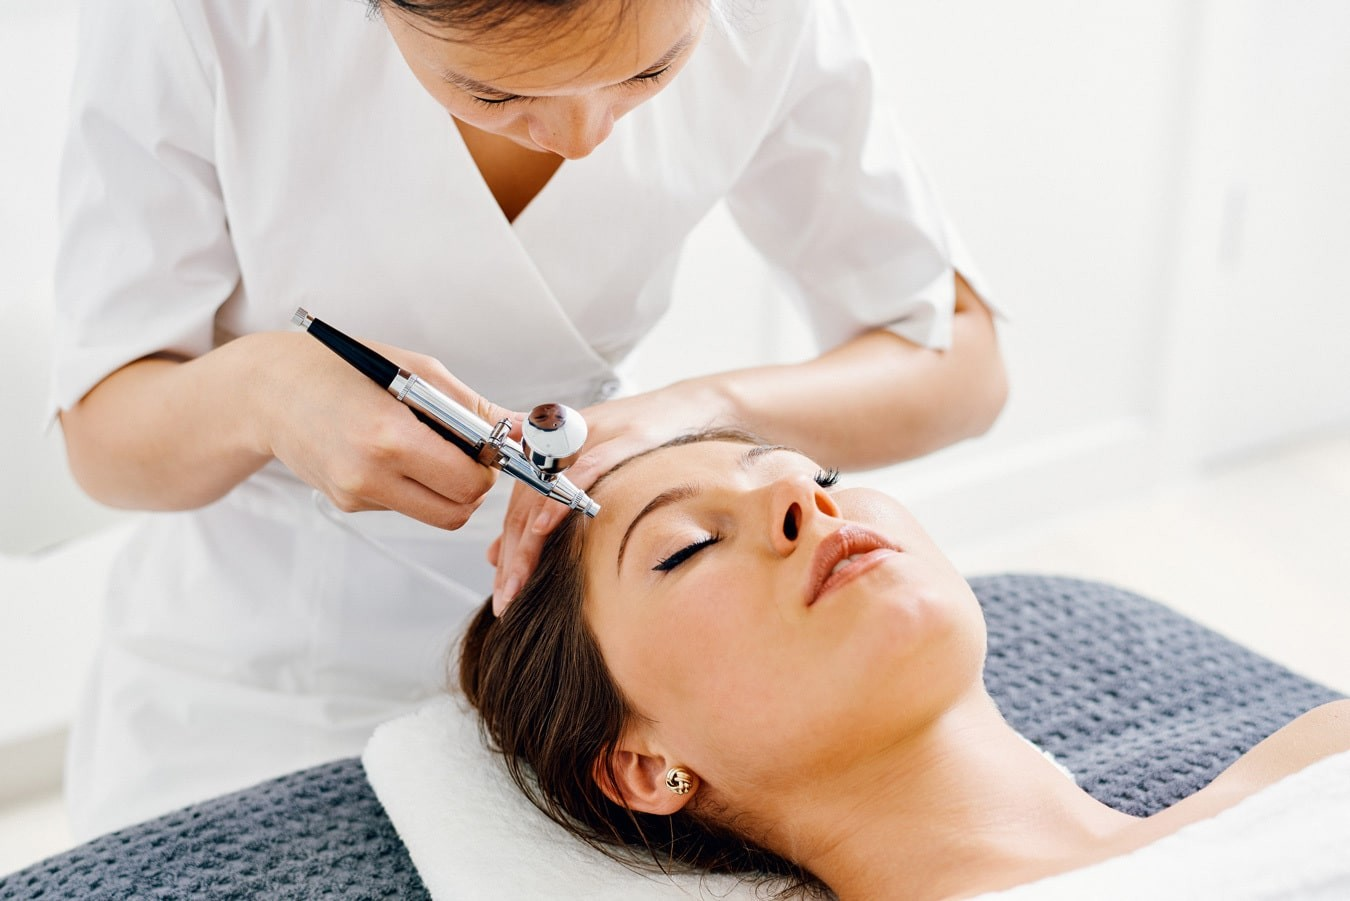 woman lay on beauty bed having oxygen facial therapy.